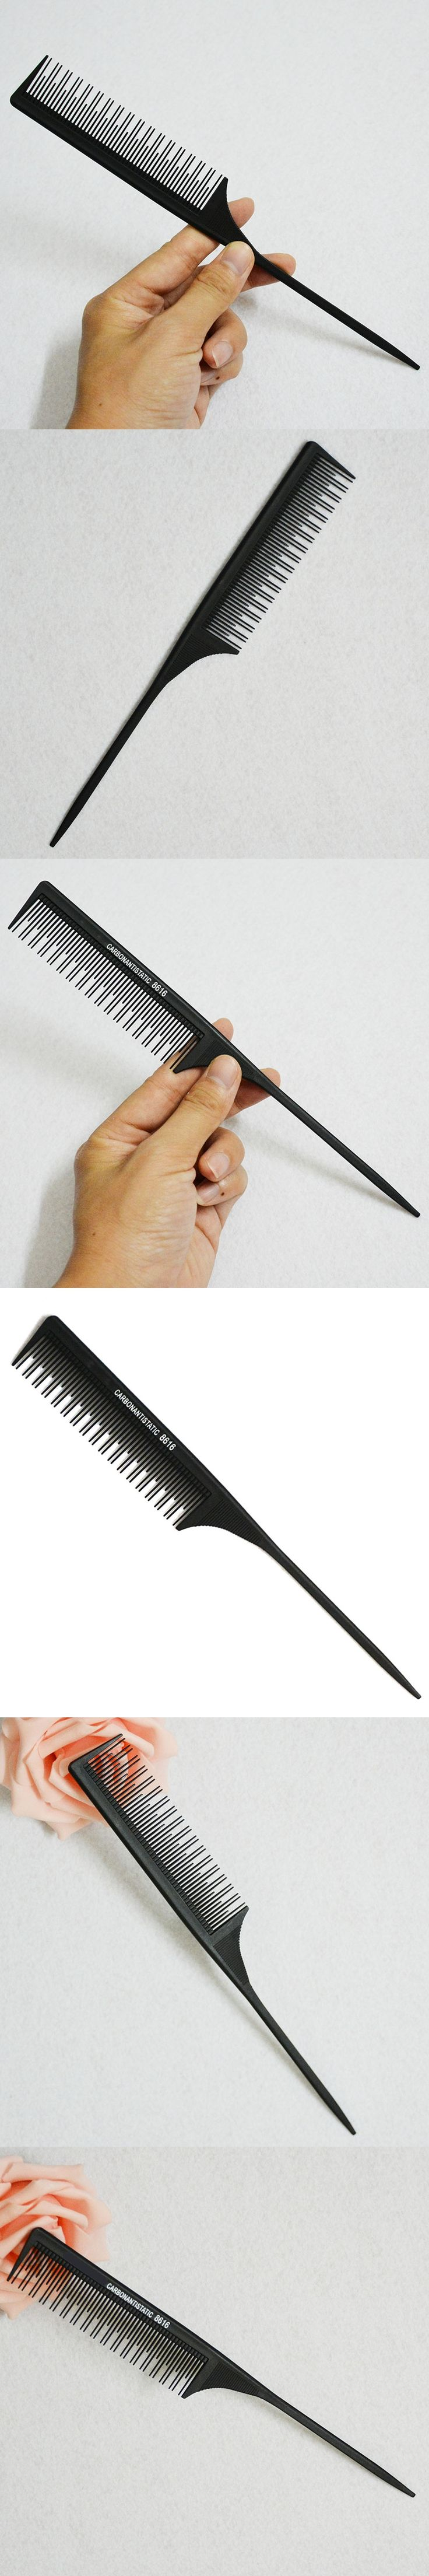 Barber Cutting Comb Hair Rat Tail Comb Brush Carbon Antistatic Comb